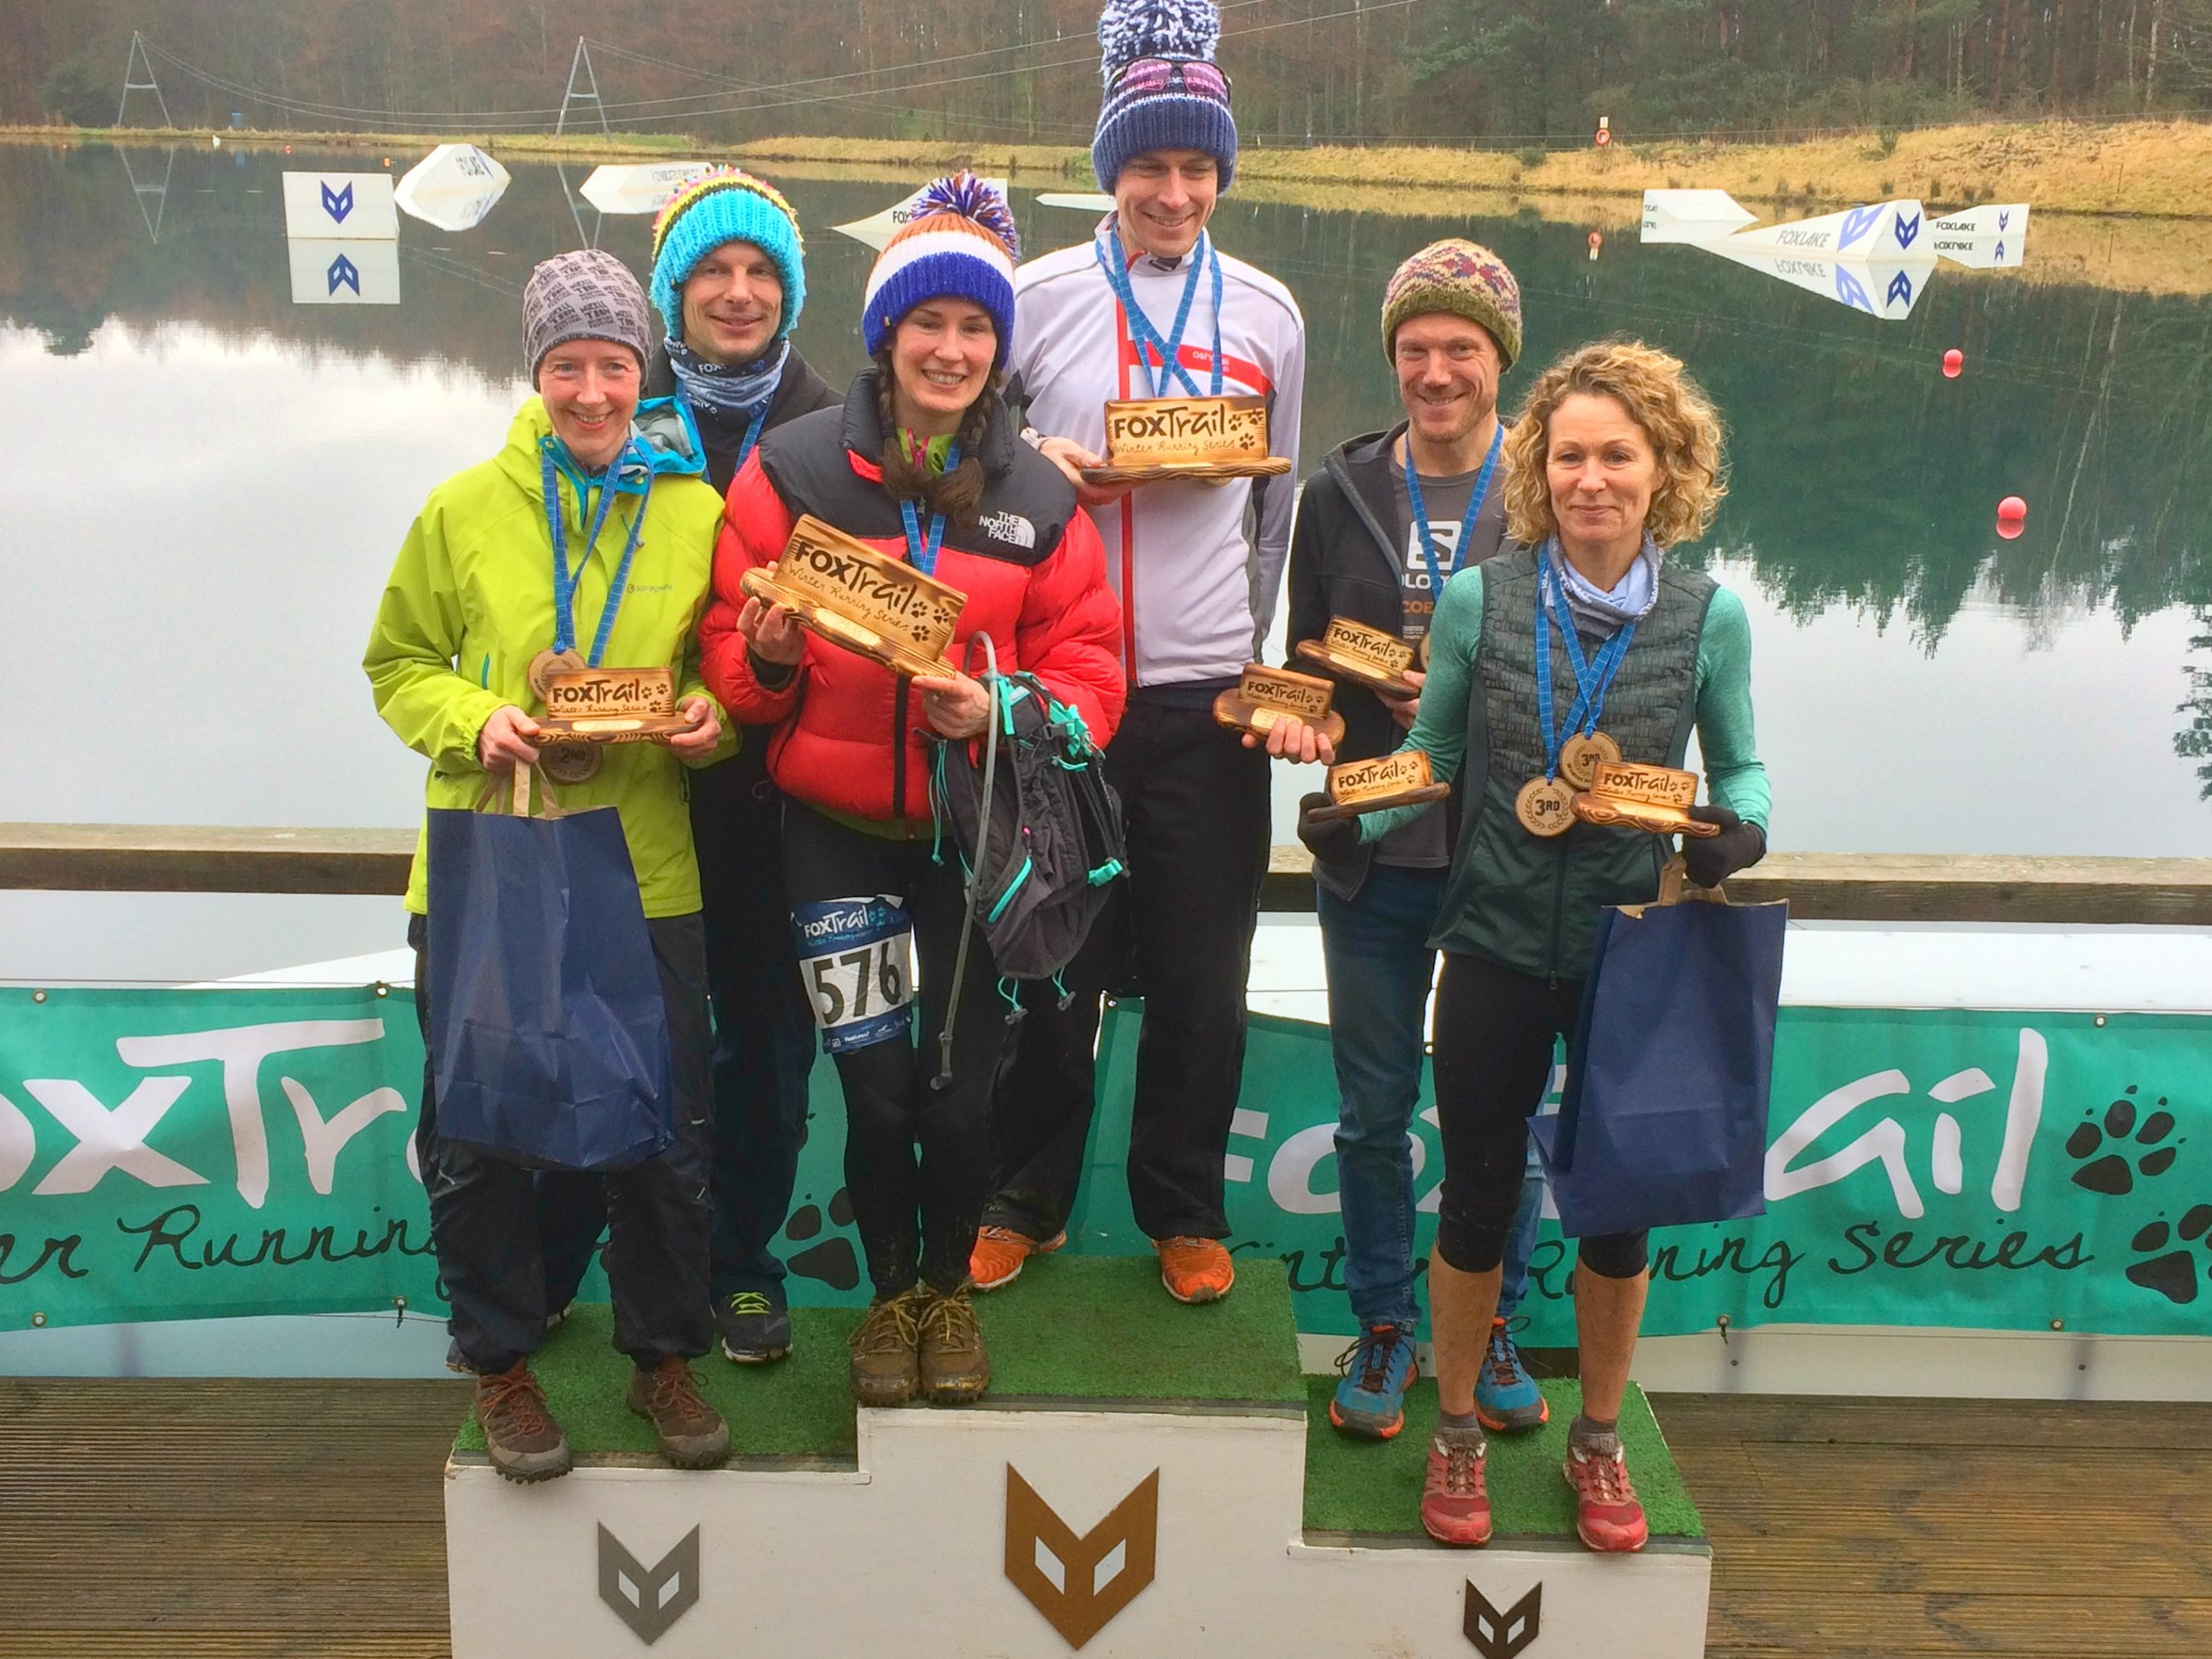 The Foxtrail Winter Running Series series winners